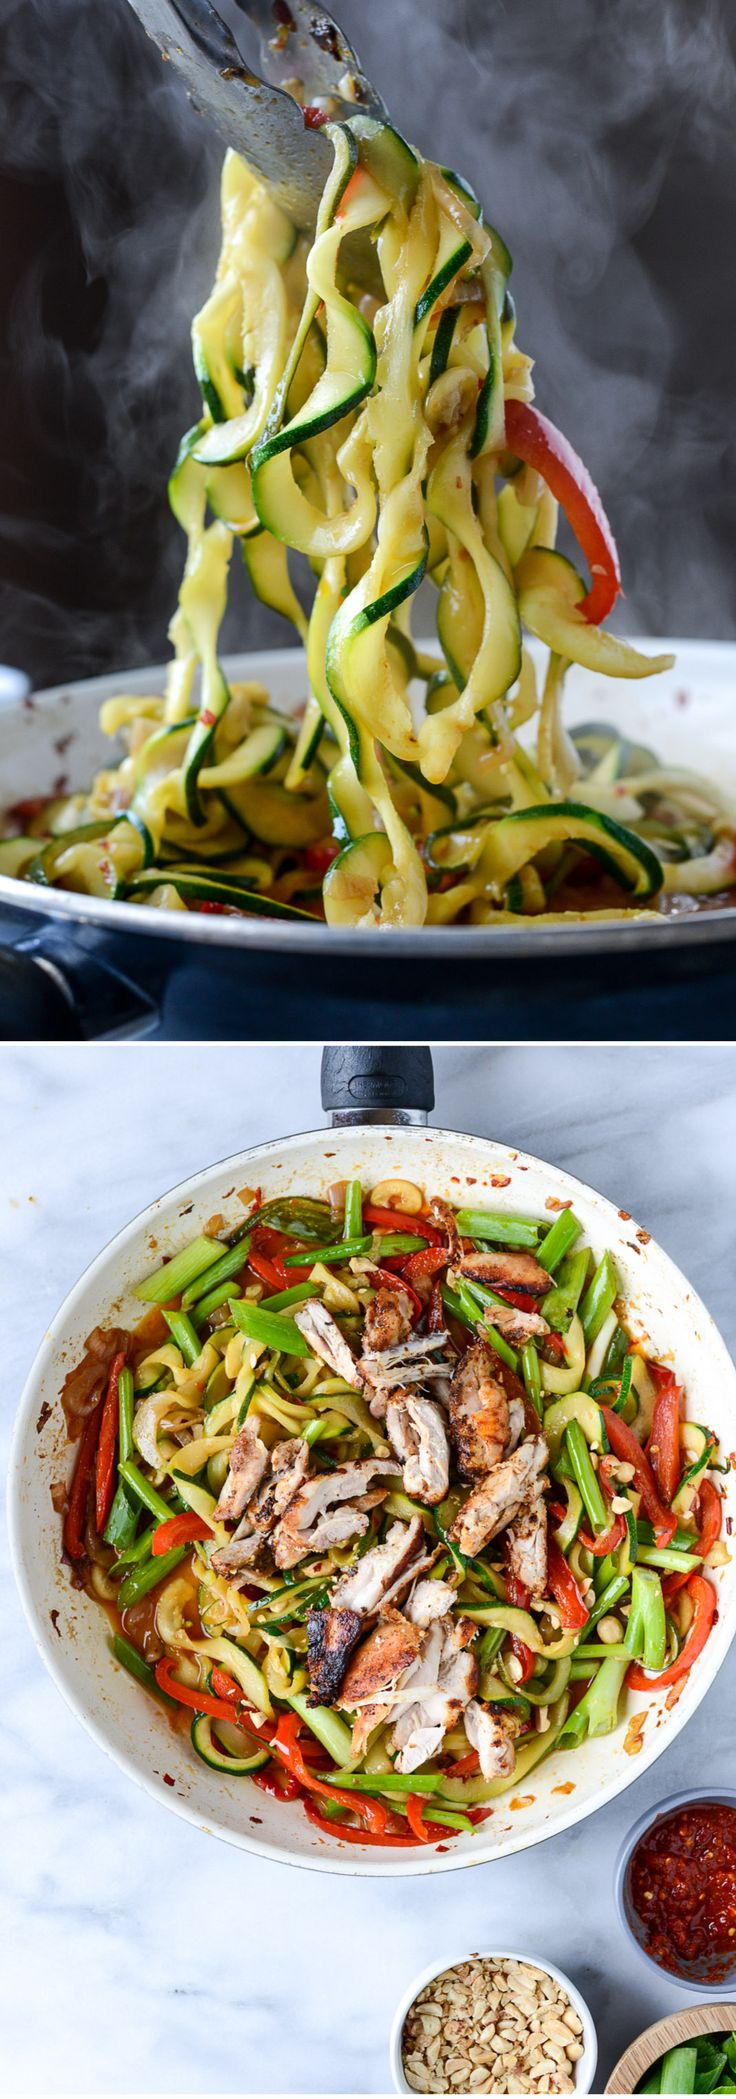 Thai Drunken Zucchini Noodles with Spicy Honey Chicken I howsweeteats.com